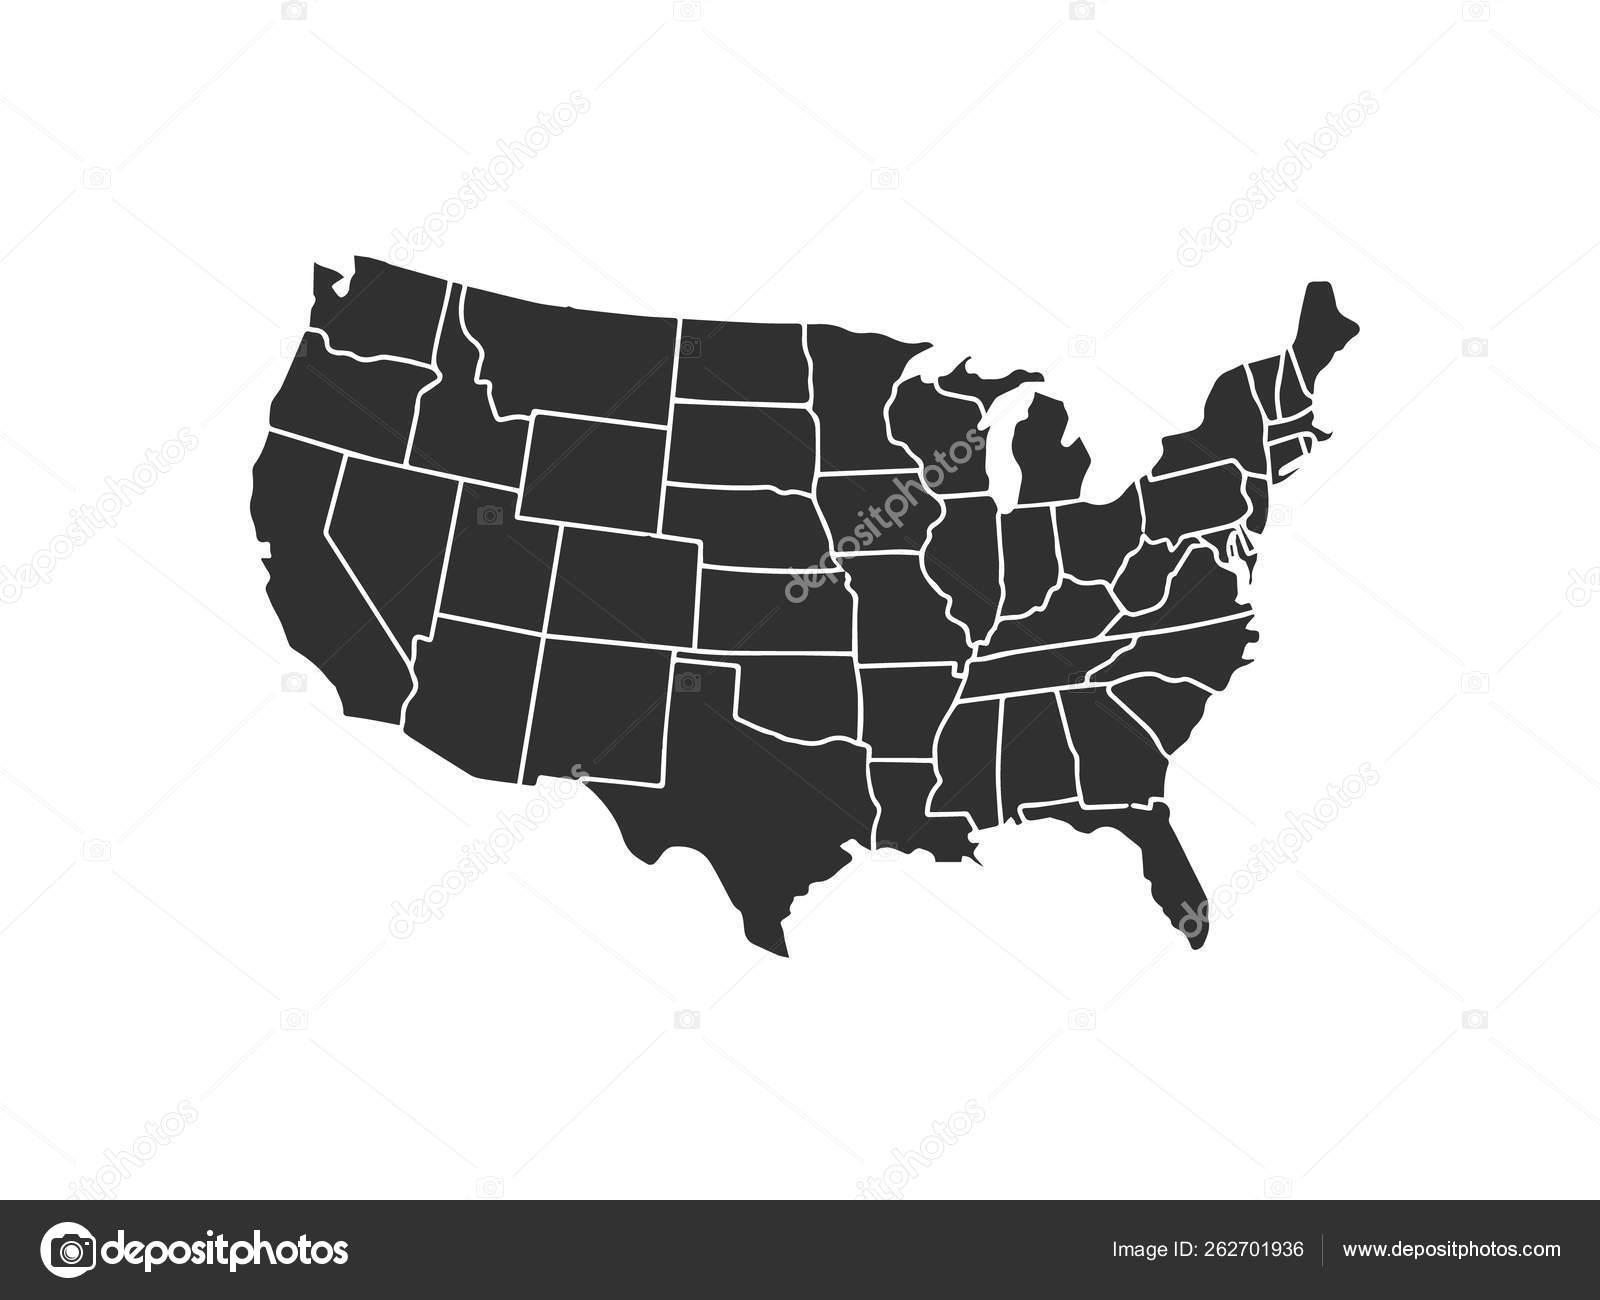 Blank similar USA map isolated on white background. United ... on cf map, wx map, gh map, world map, br map, pk map, ba map, mc map, labeled us map, de map, sl map, gu map, be map, tz map, 50 states map, university of arizona map, gn map, cx map, ukraine map,